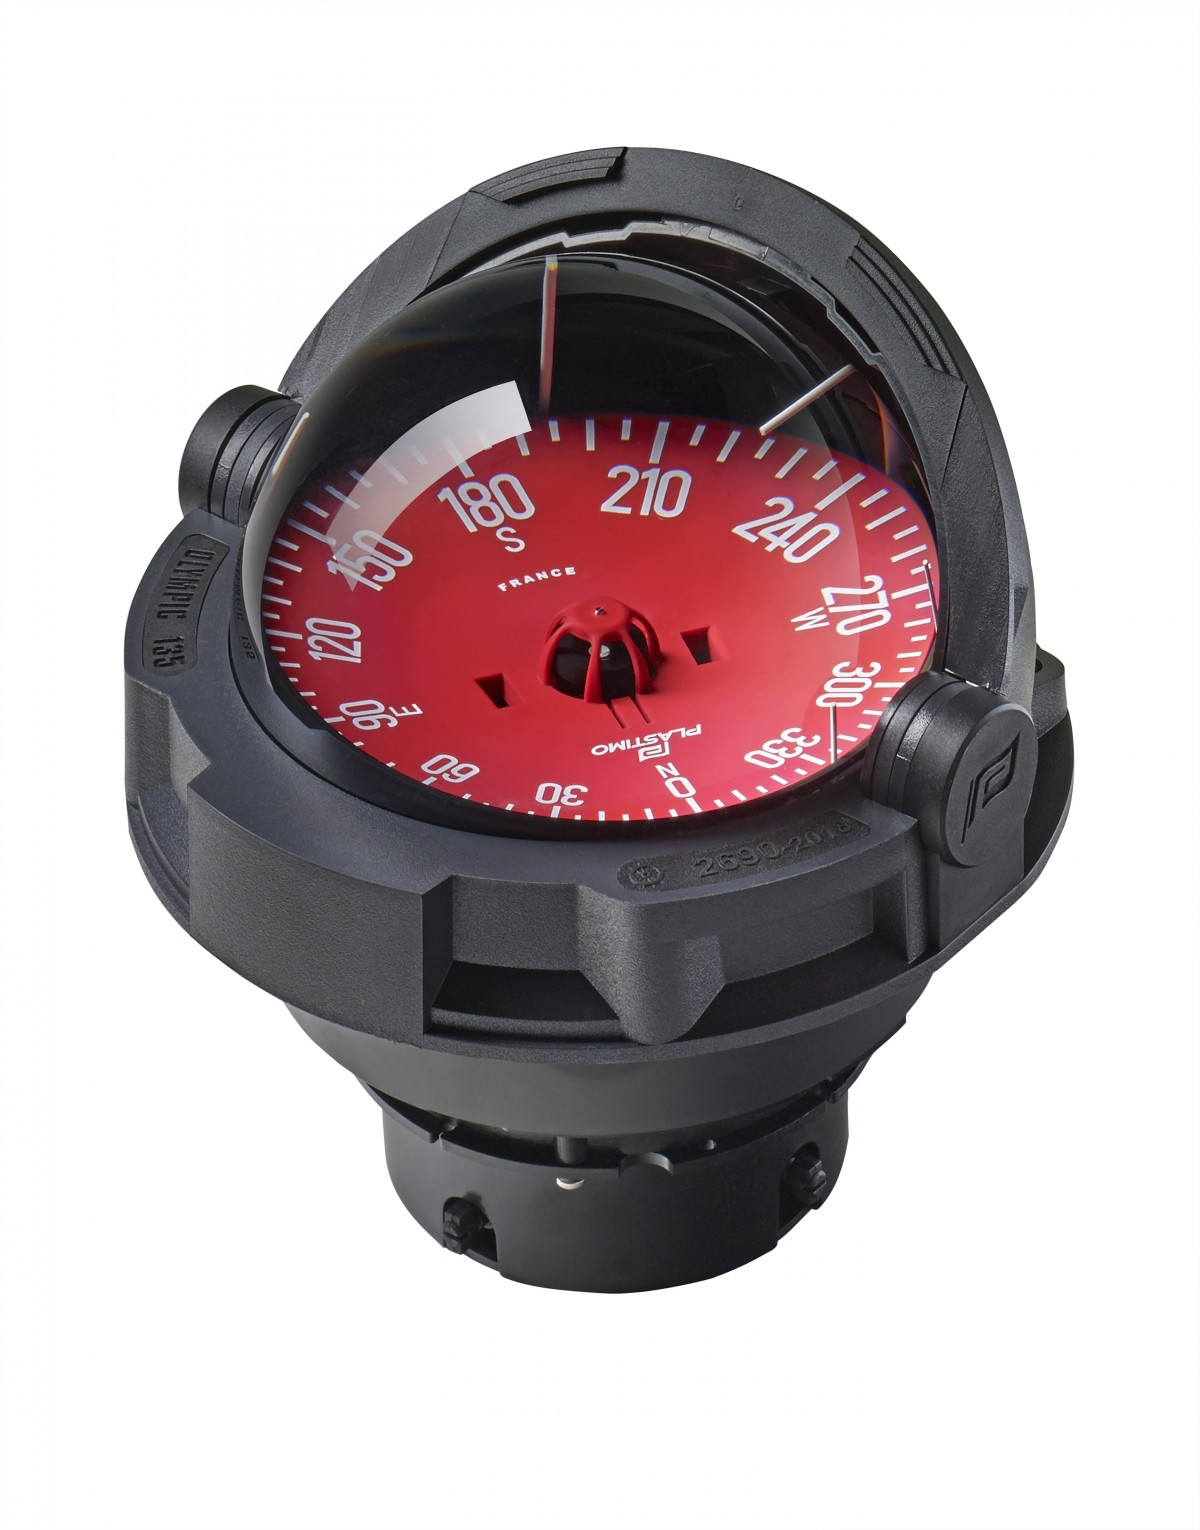 Olympic 135 Compass Plastimo Happy Boating To You Oval Track Pro Tach Wiring